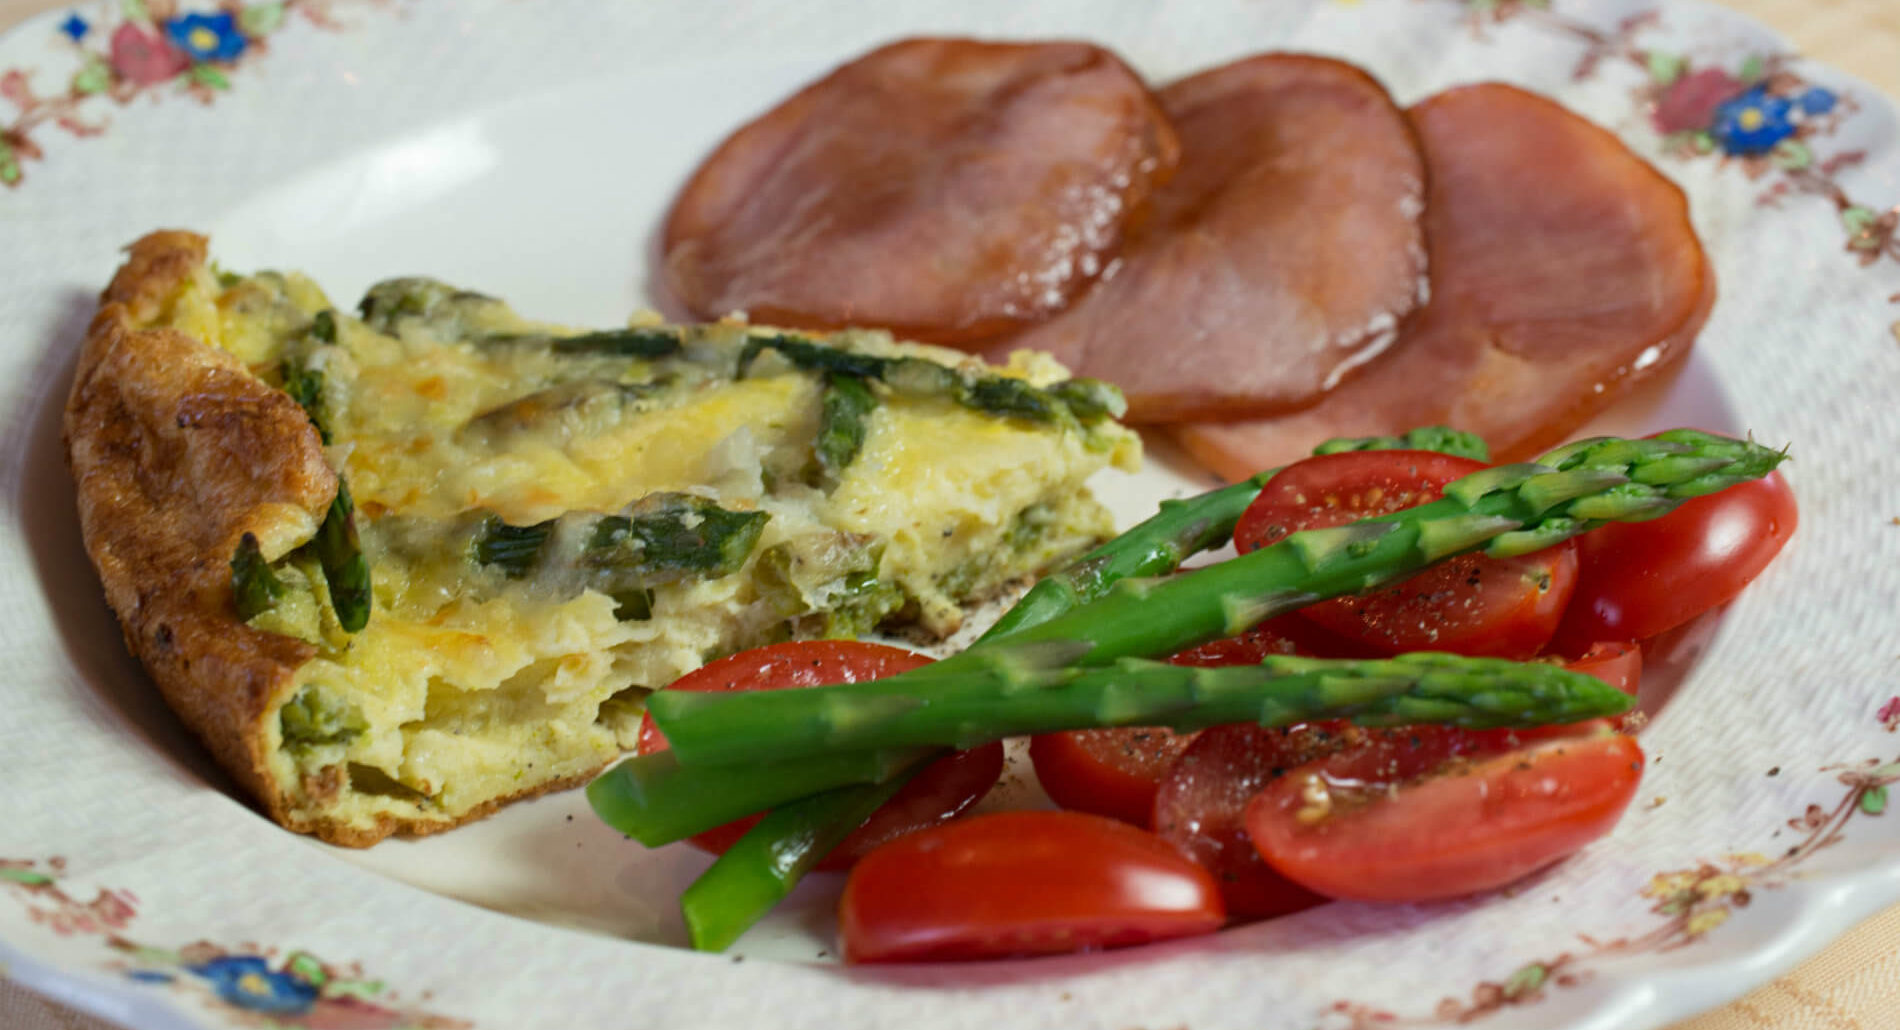 A white plate displaying a quiche, Canadian bacon, bright green asparagus and vibrant red cherry tomato slices